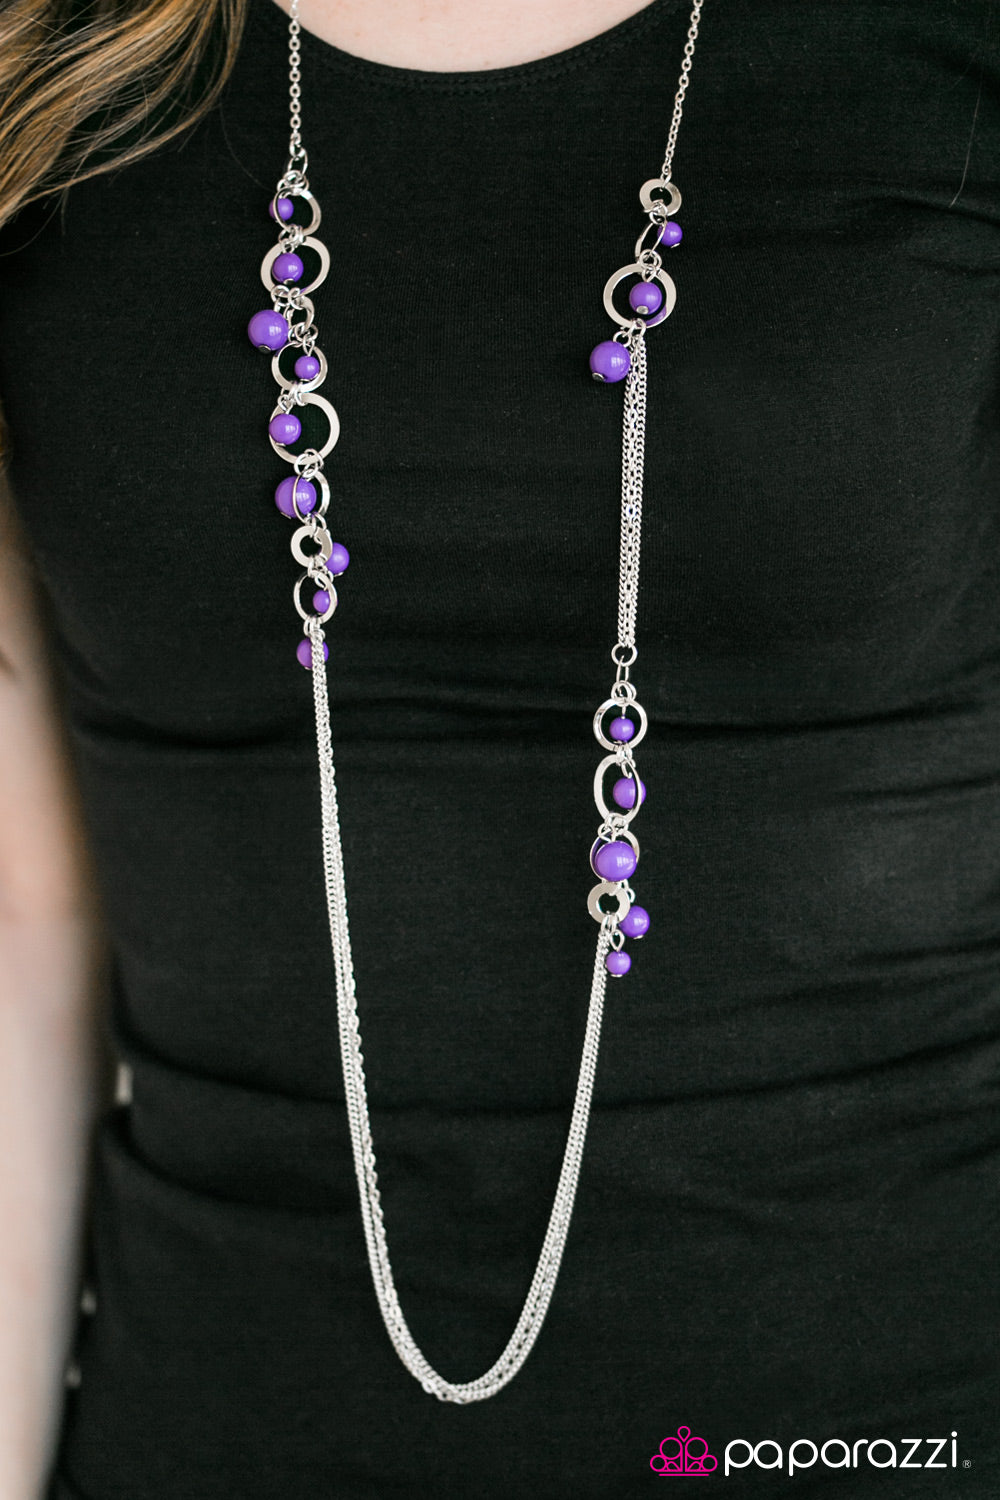 Its Summer Somewhere - Purple - Paparazzi necklace